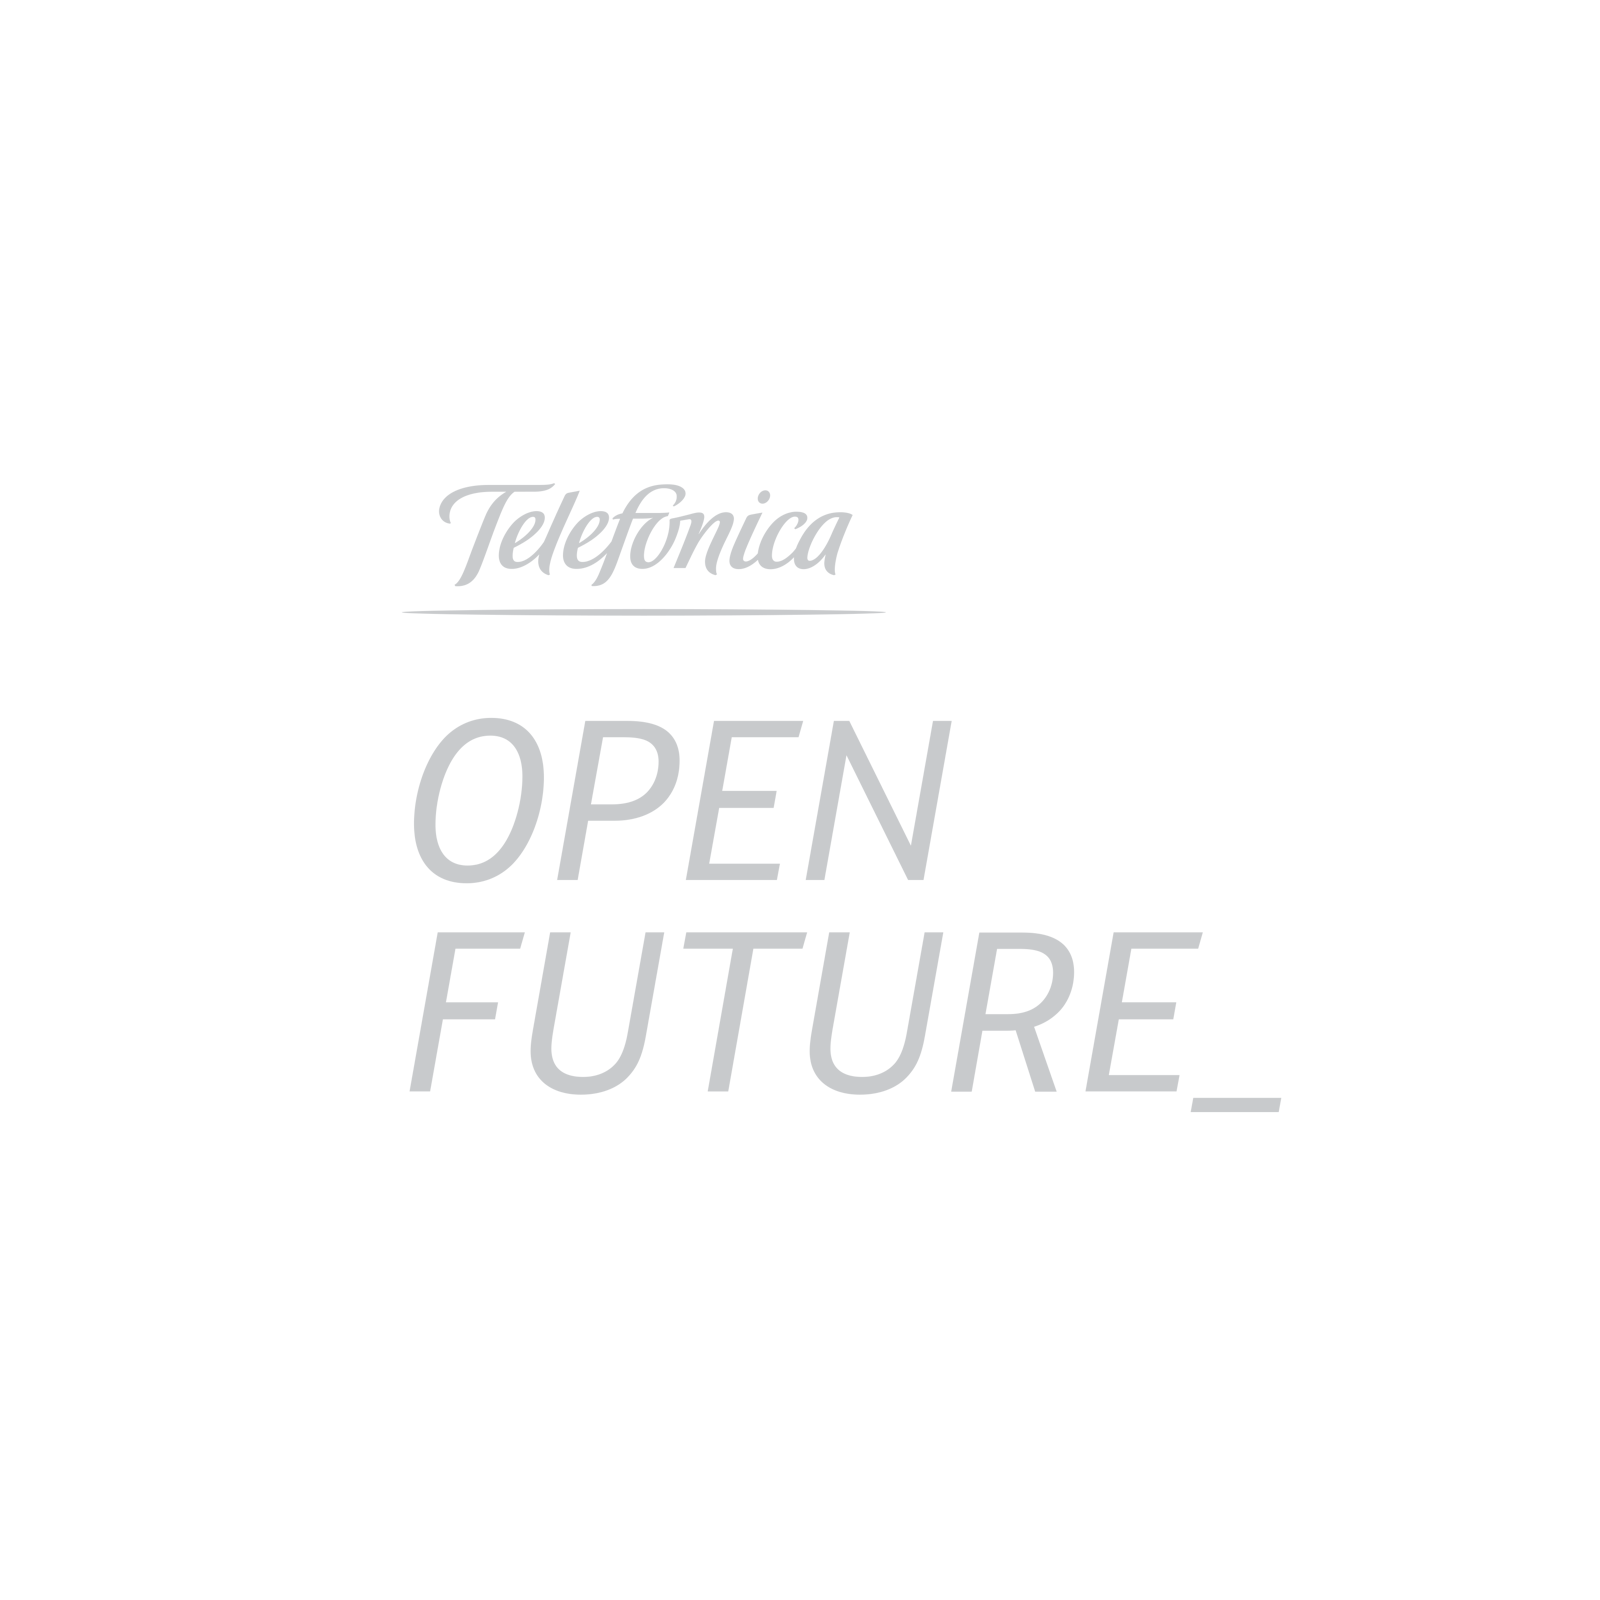 Copy of Telefónica One Future Logo